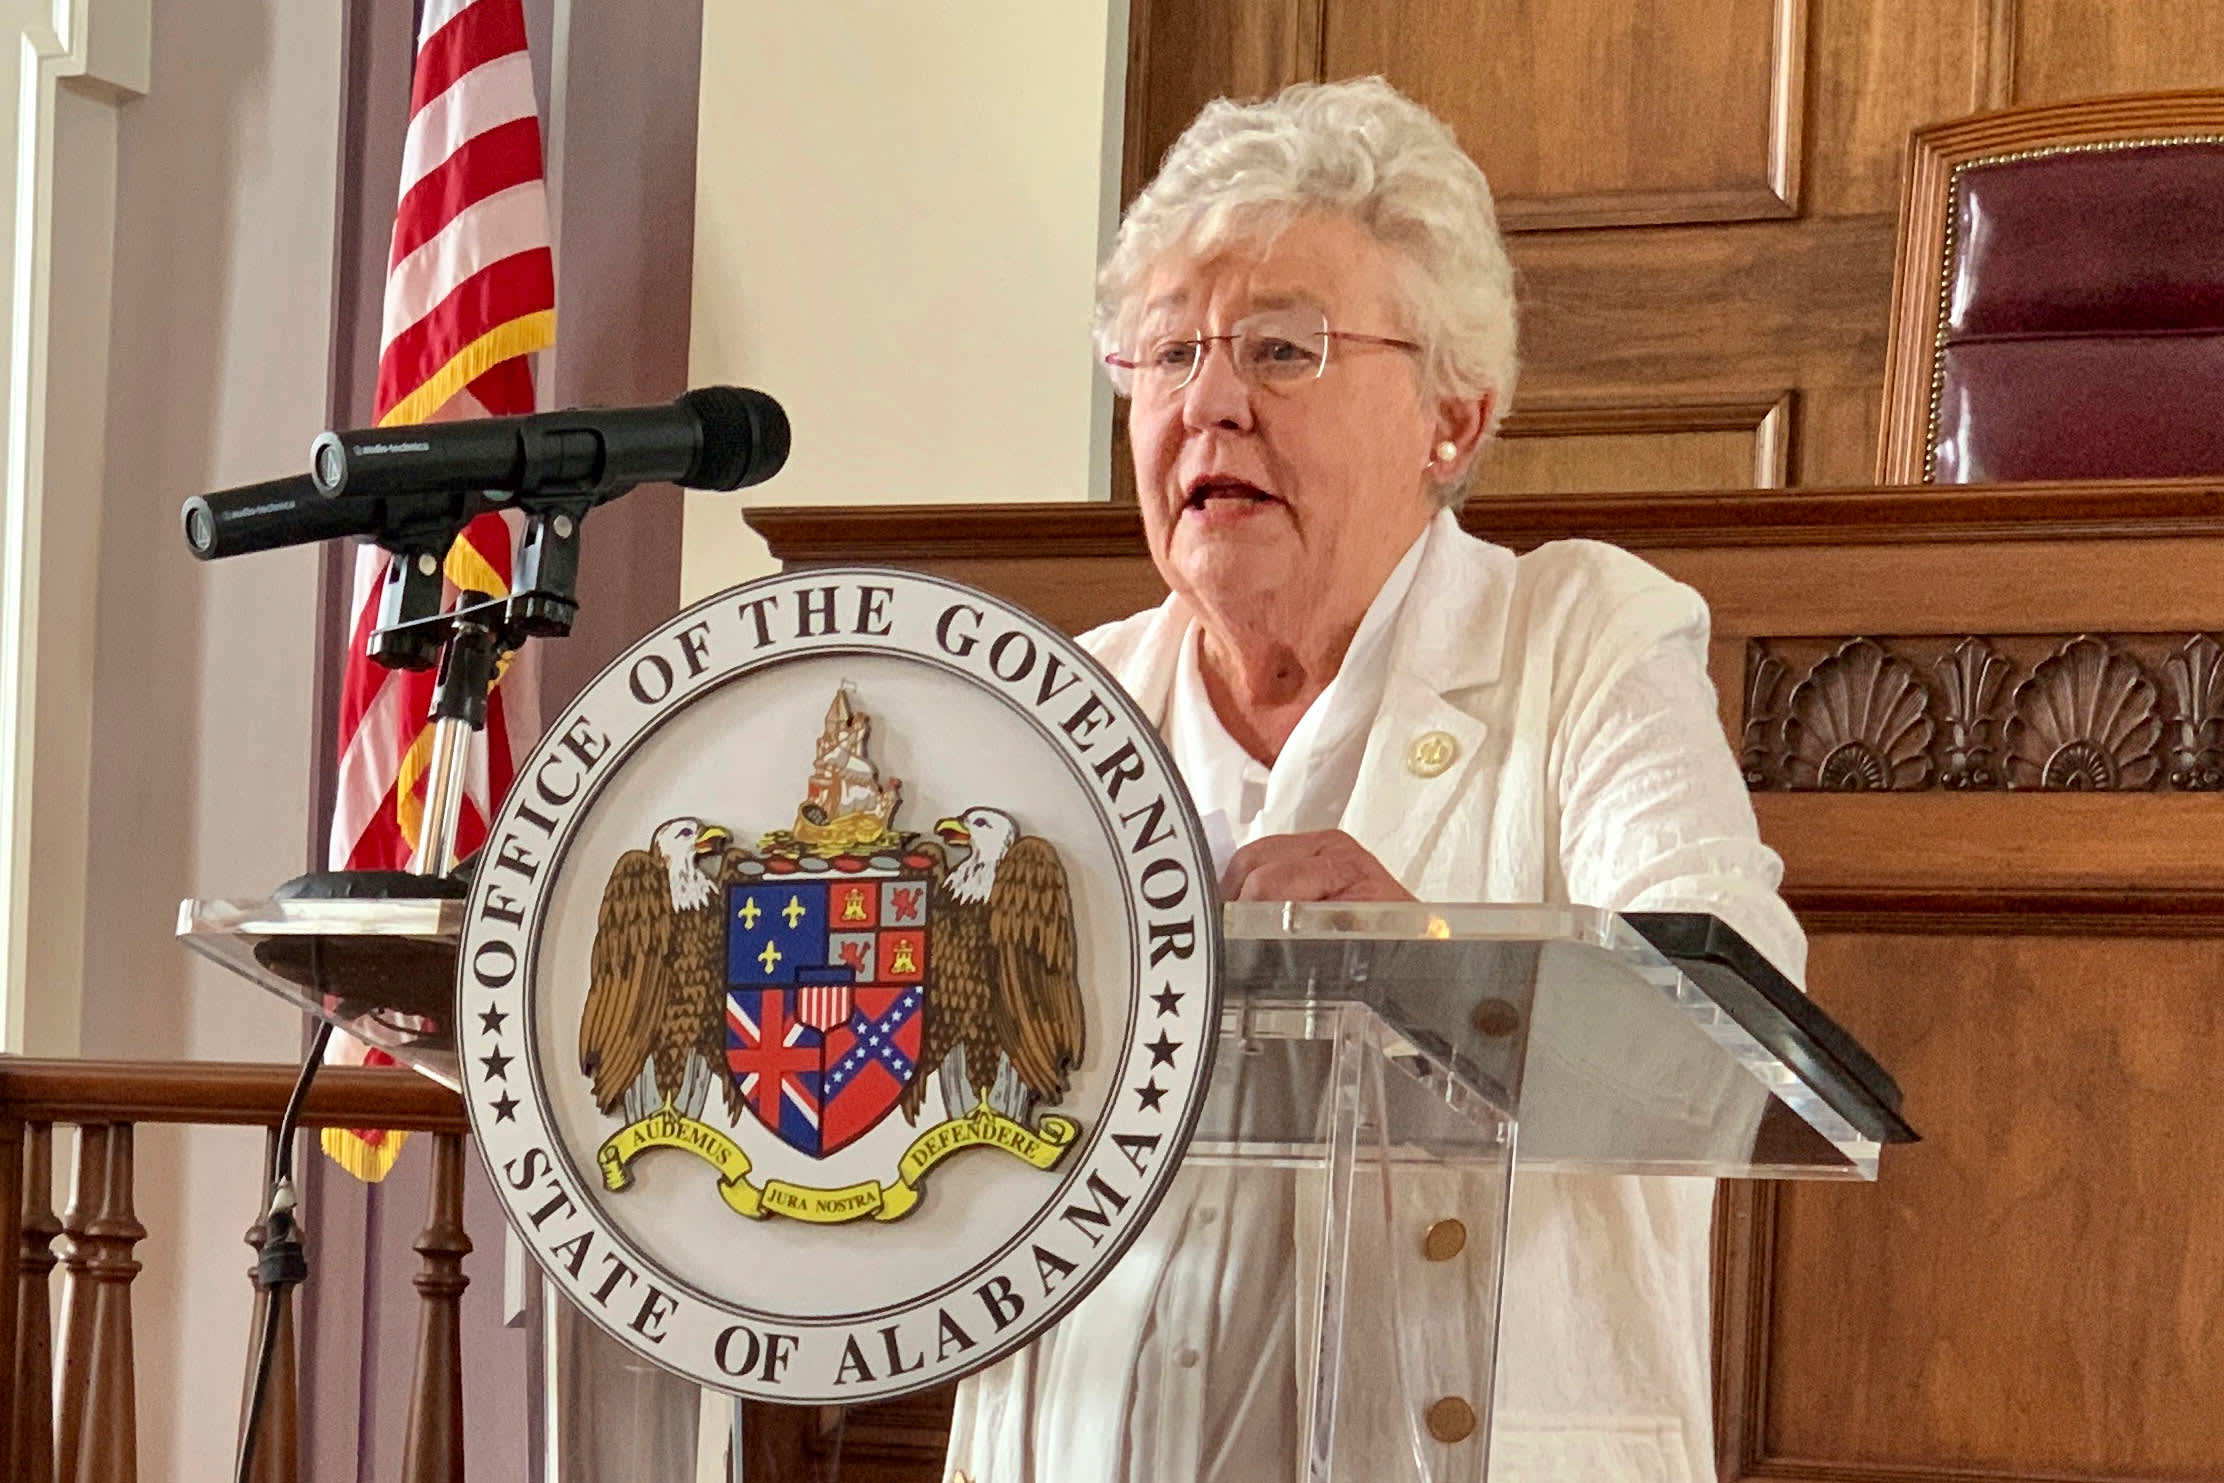 Alabama Gov. Ivey lifts statewide Covid mask mandate beginning April 9